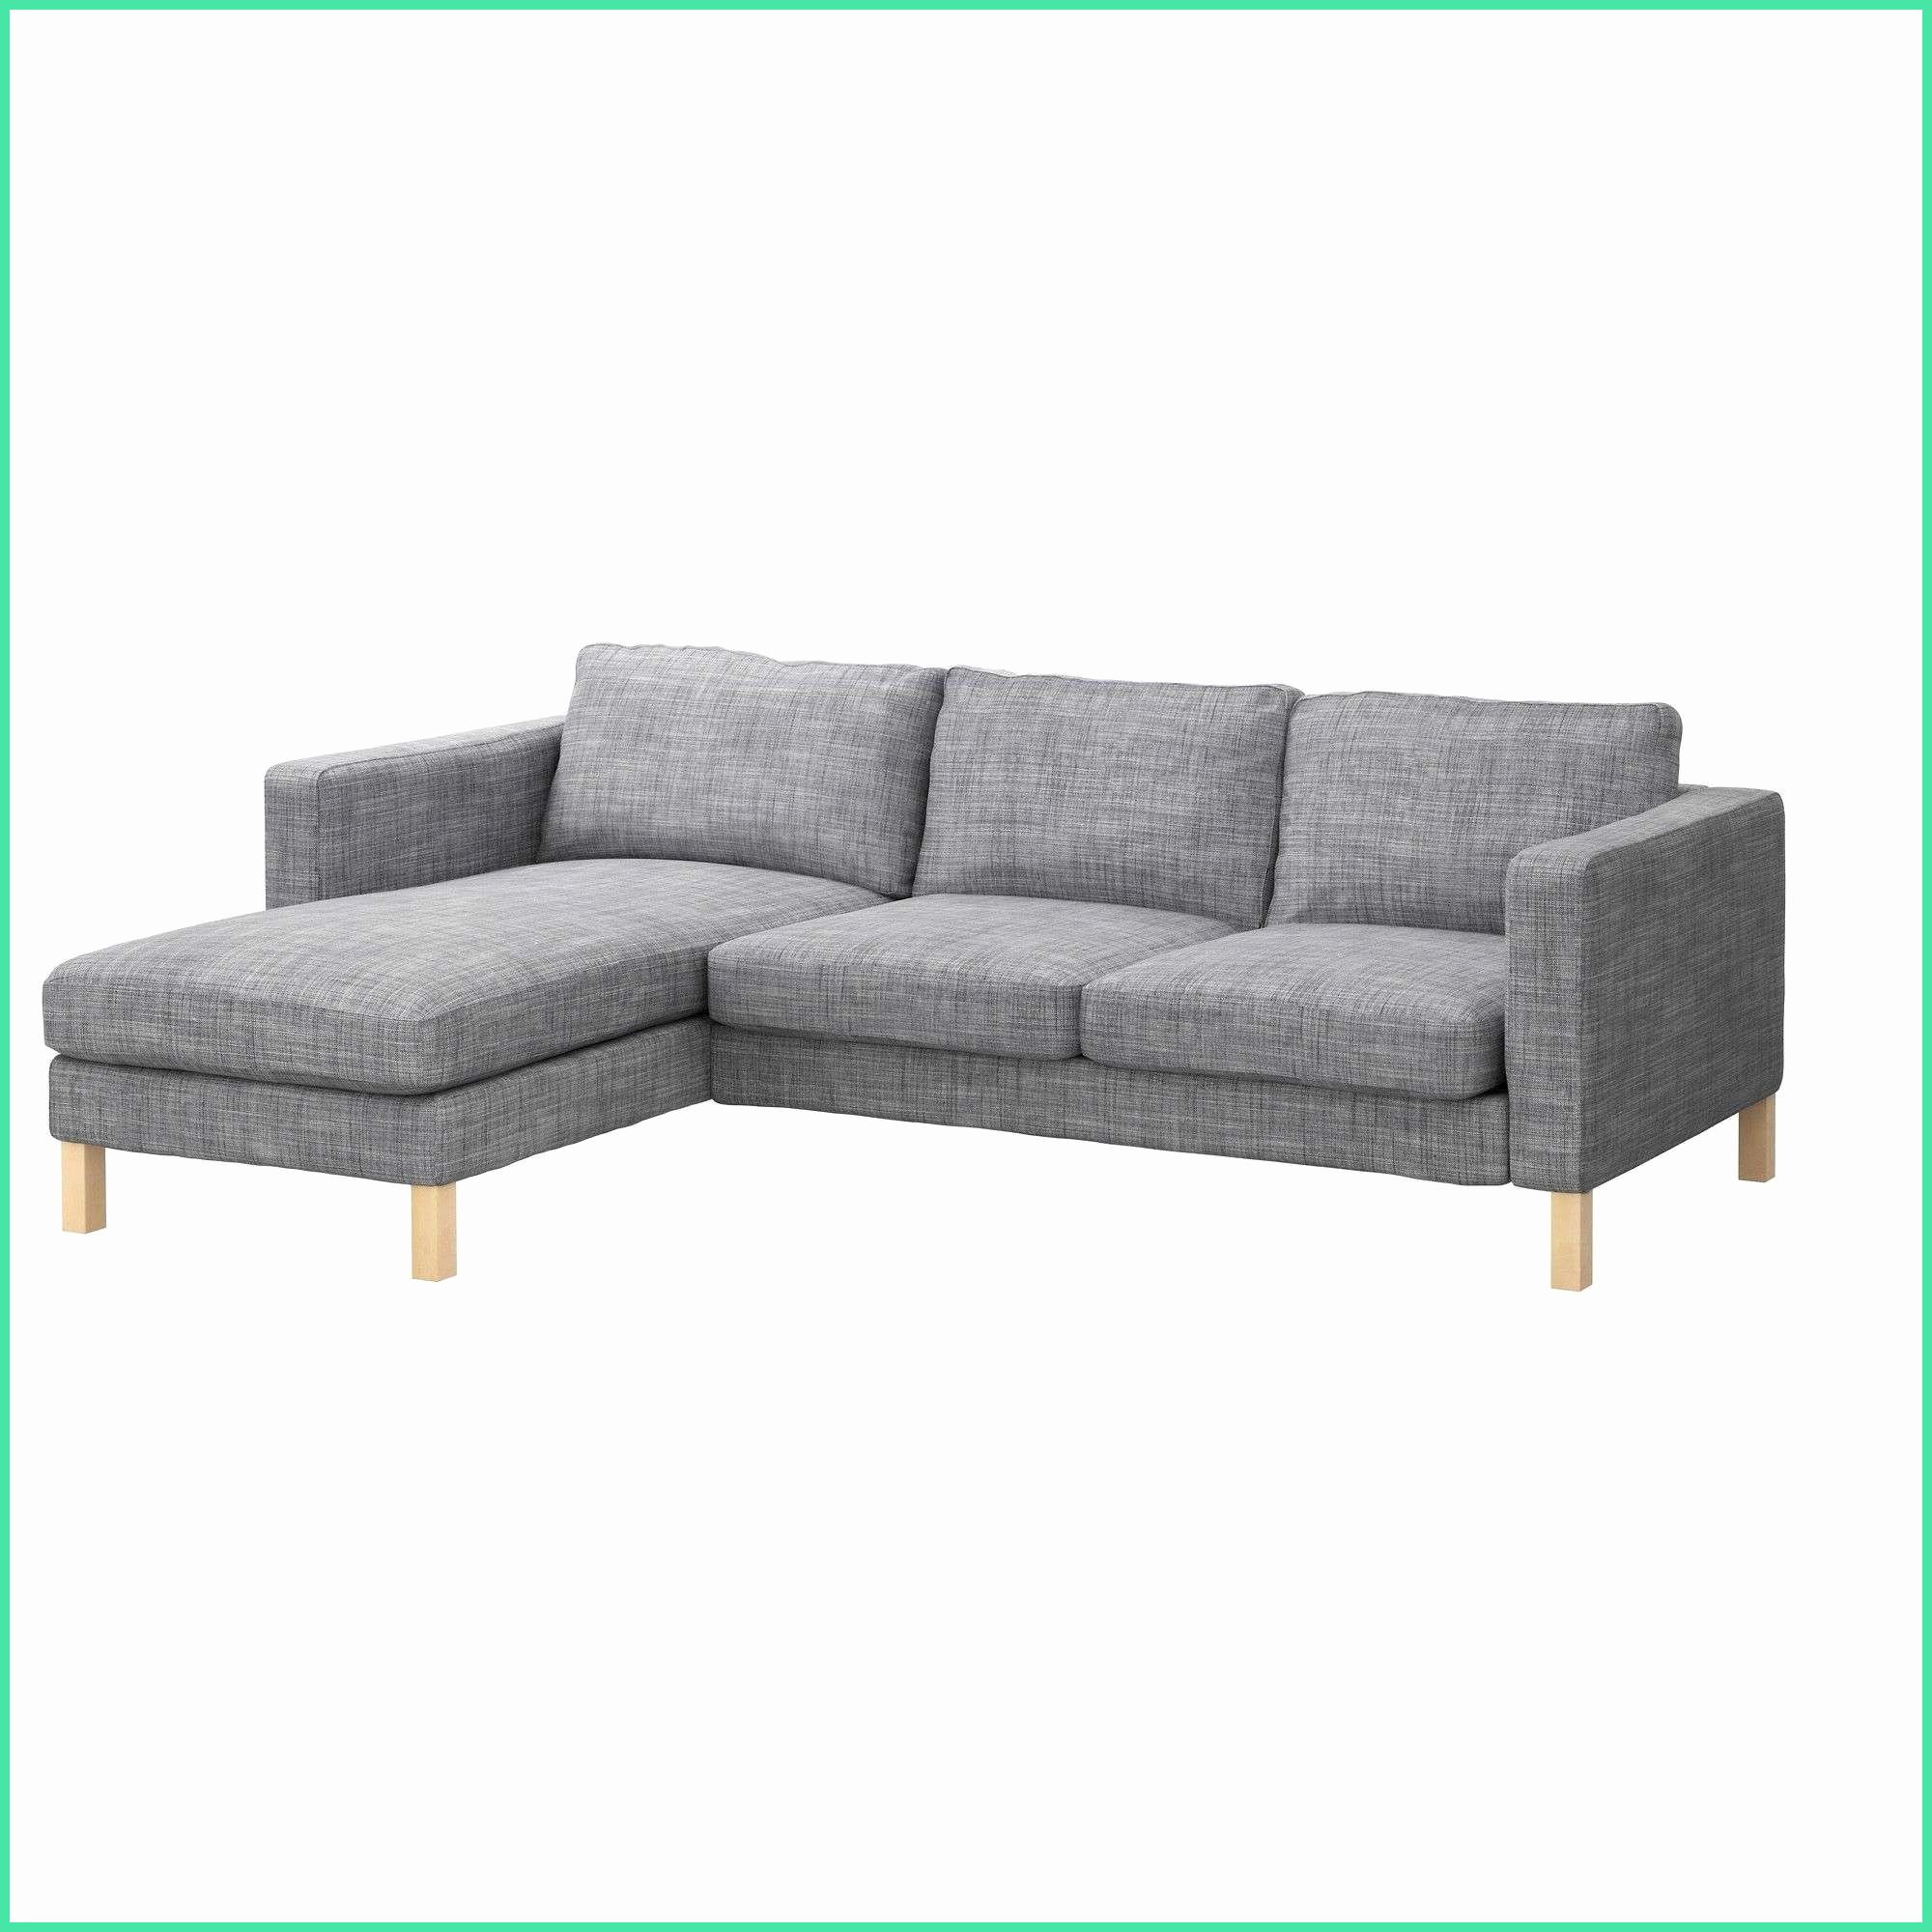 17 Genial Xxl Sessel Grau In 2020 Ikea Sofa Love Seat Ikea Couch